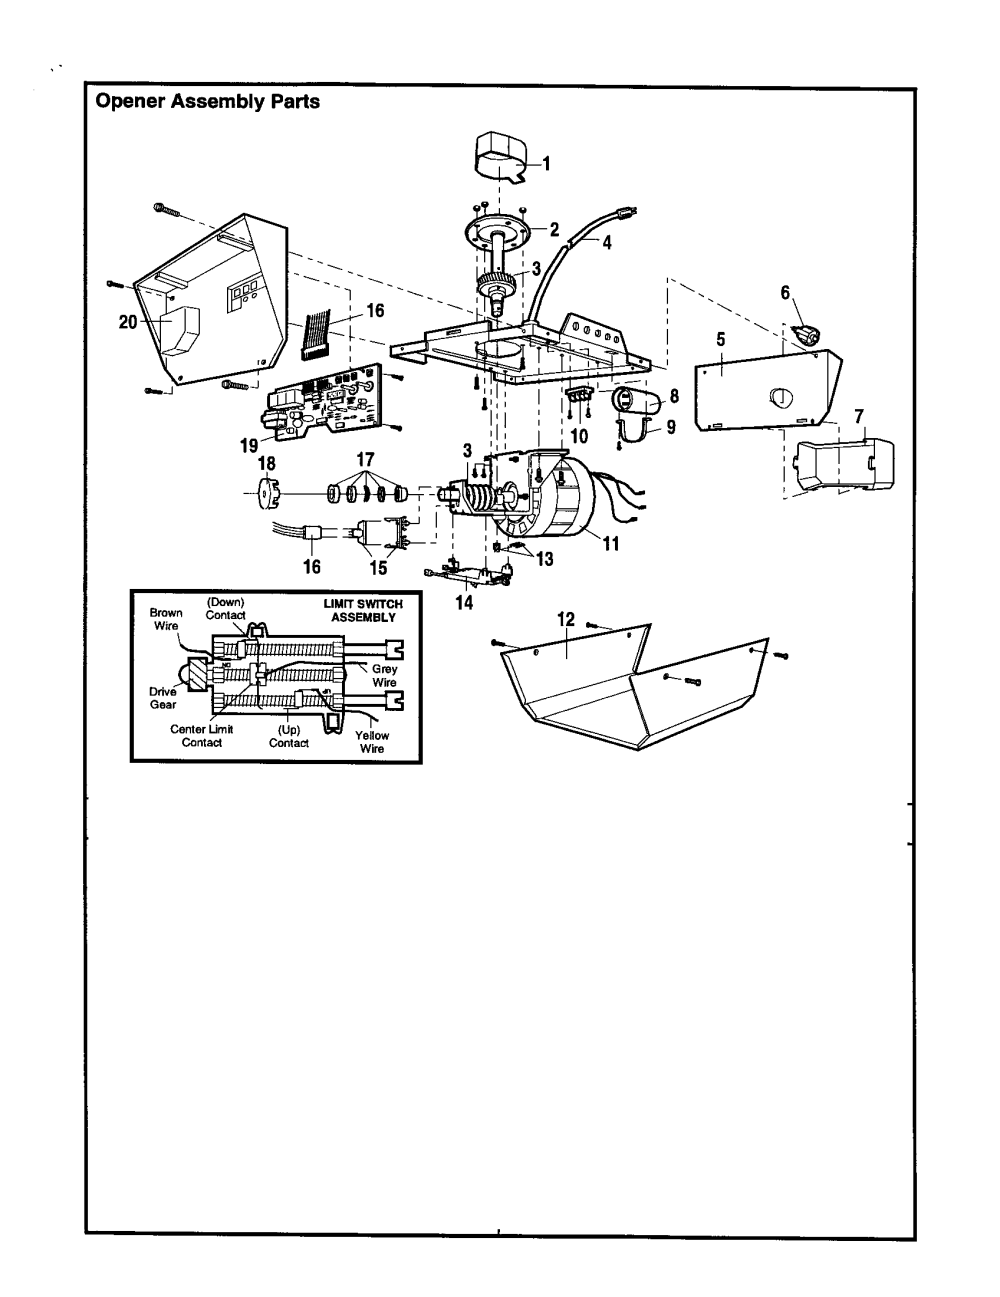 medium resolution of craftsman 13953650srt opener assembly diagram